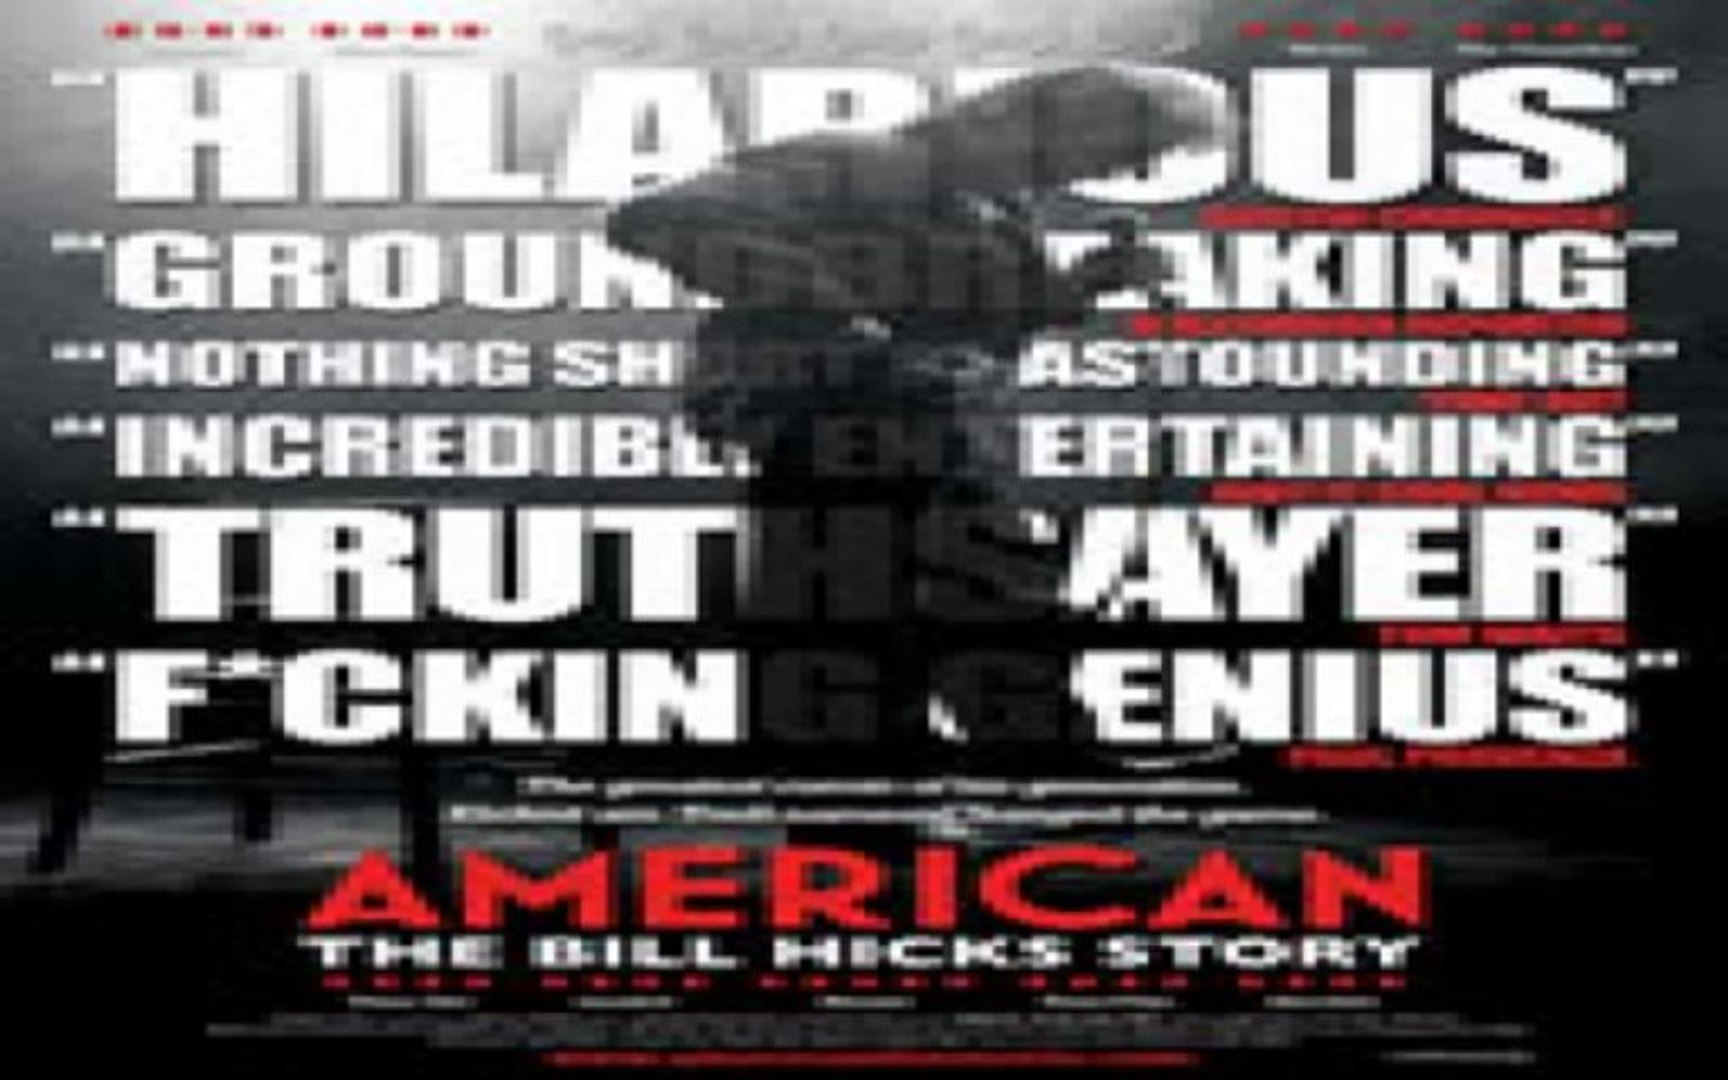 Watch American: The Bill Hicks Story Online Free